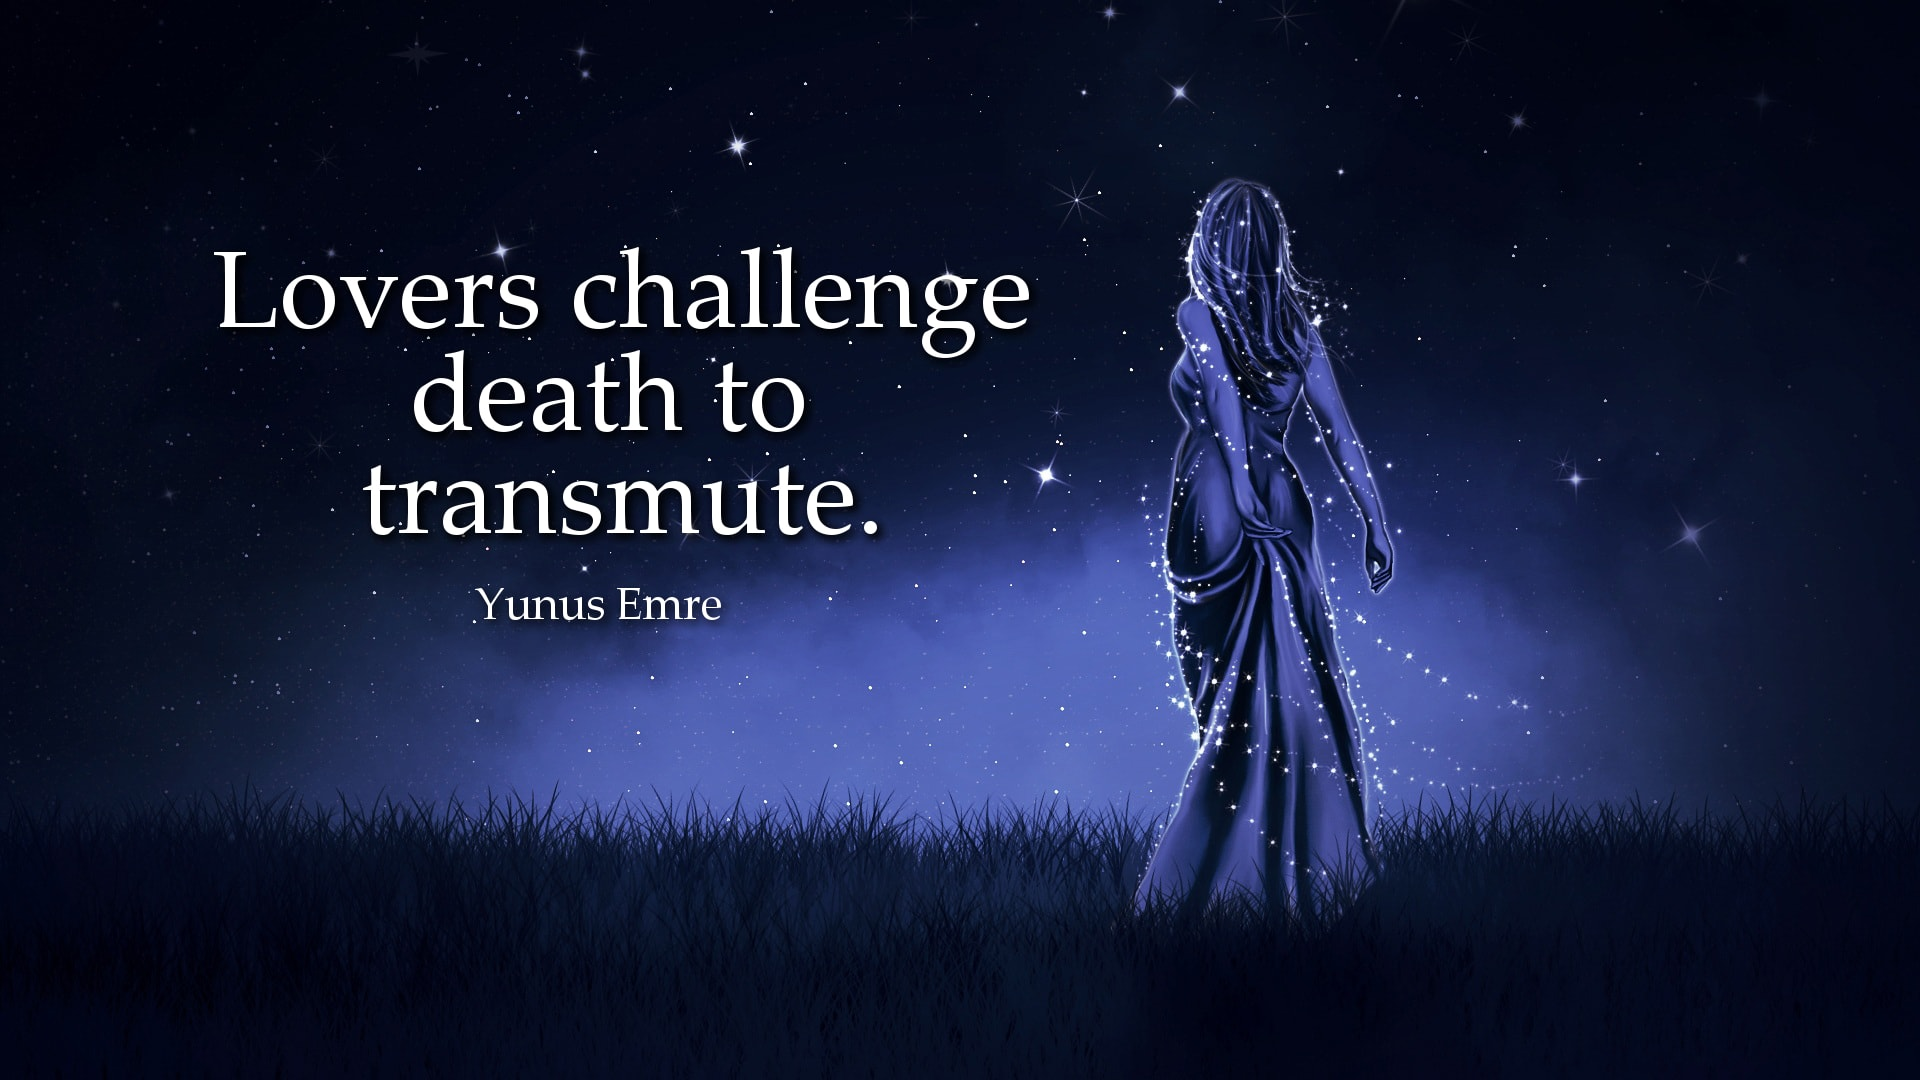 Yunus Emre Quote: Lovers challenge death to transmute.